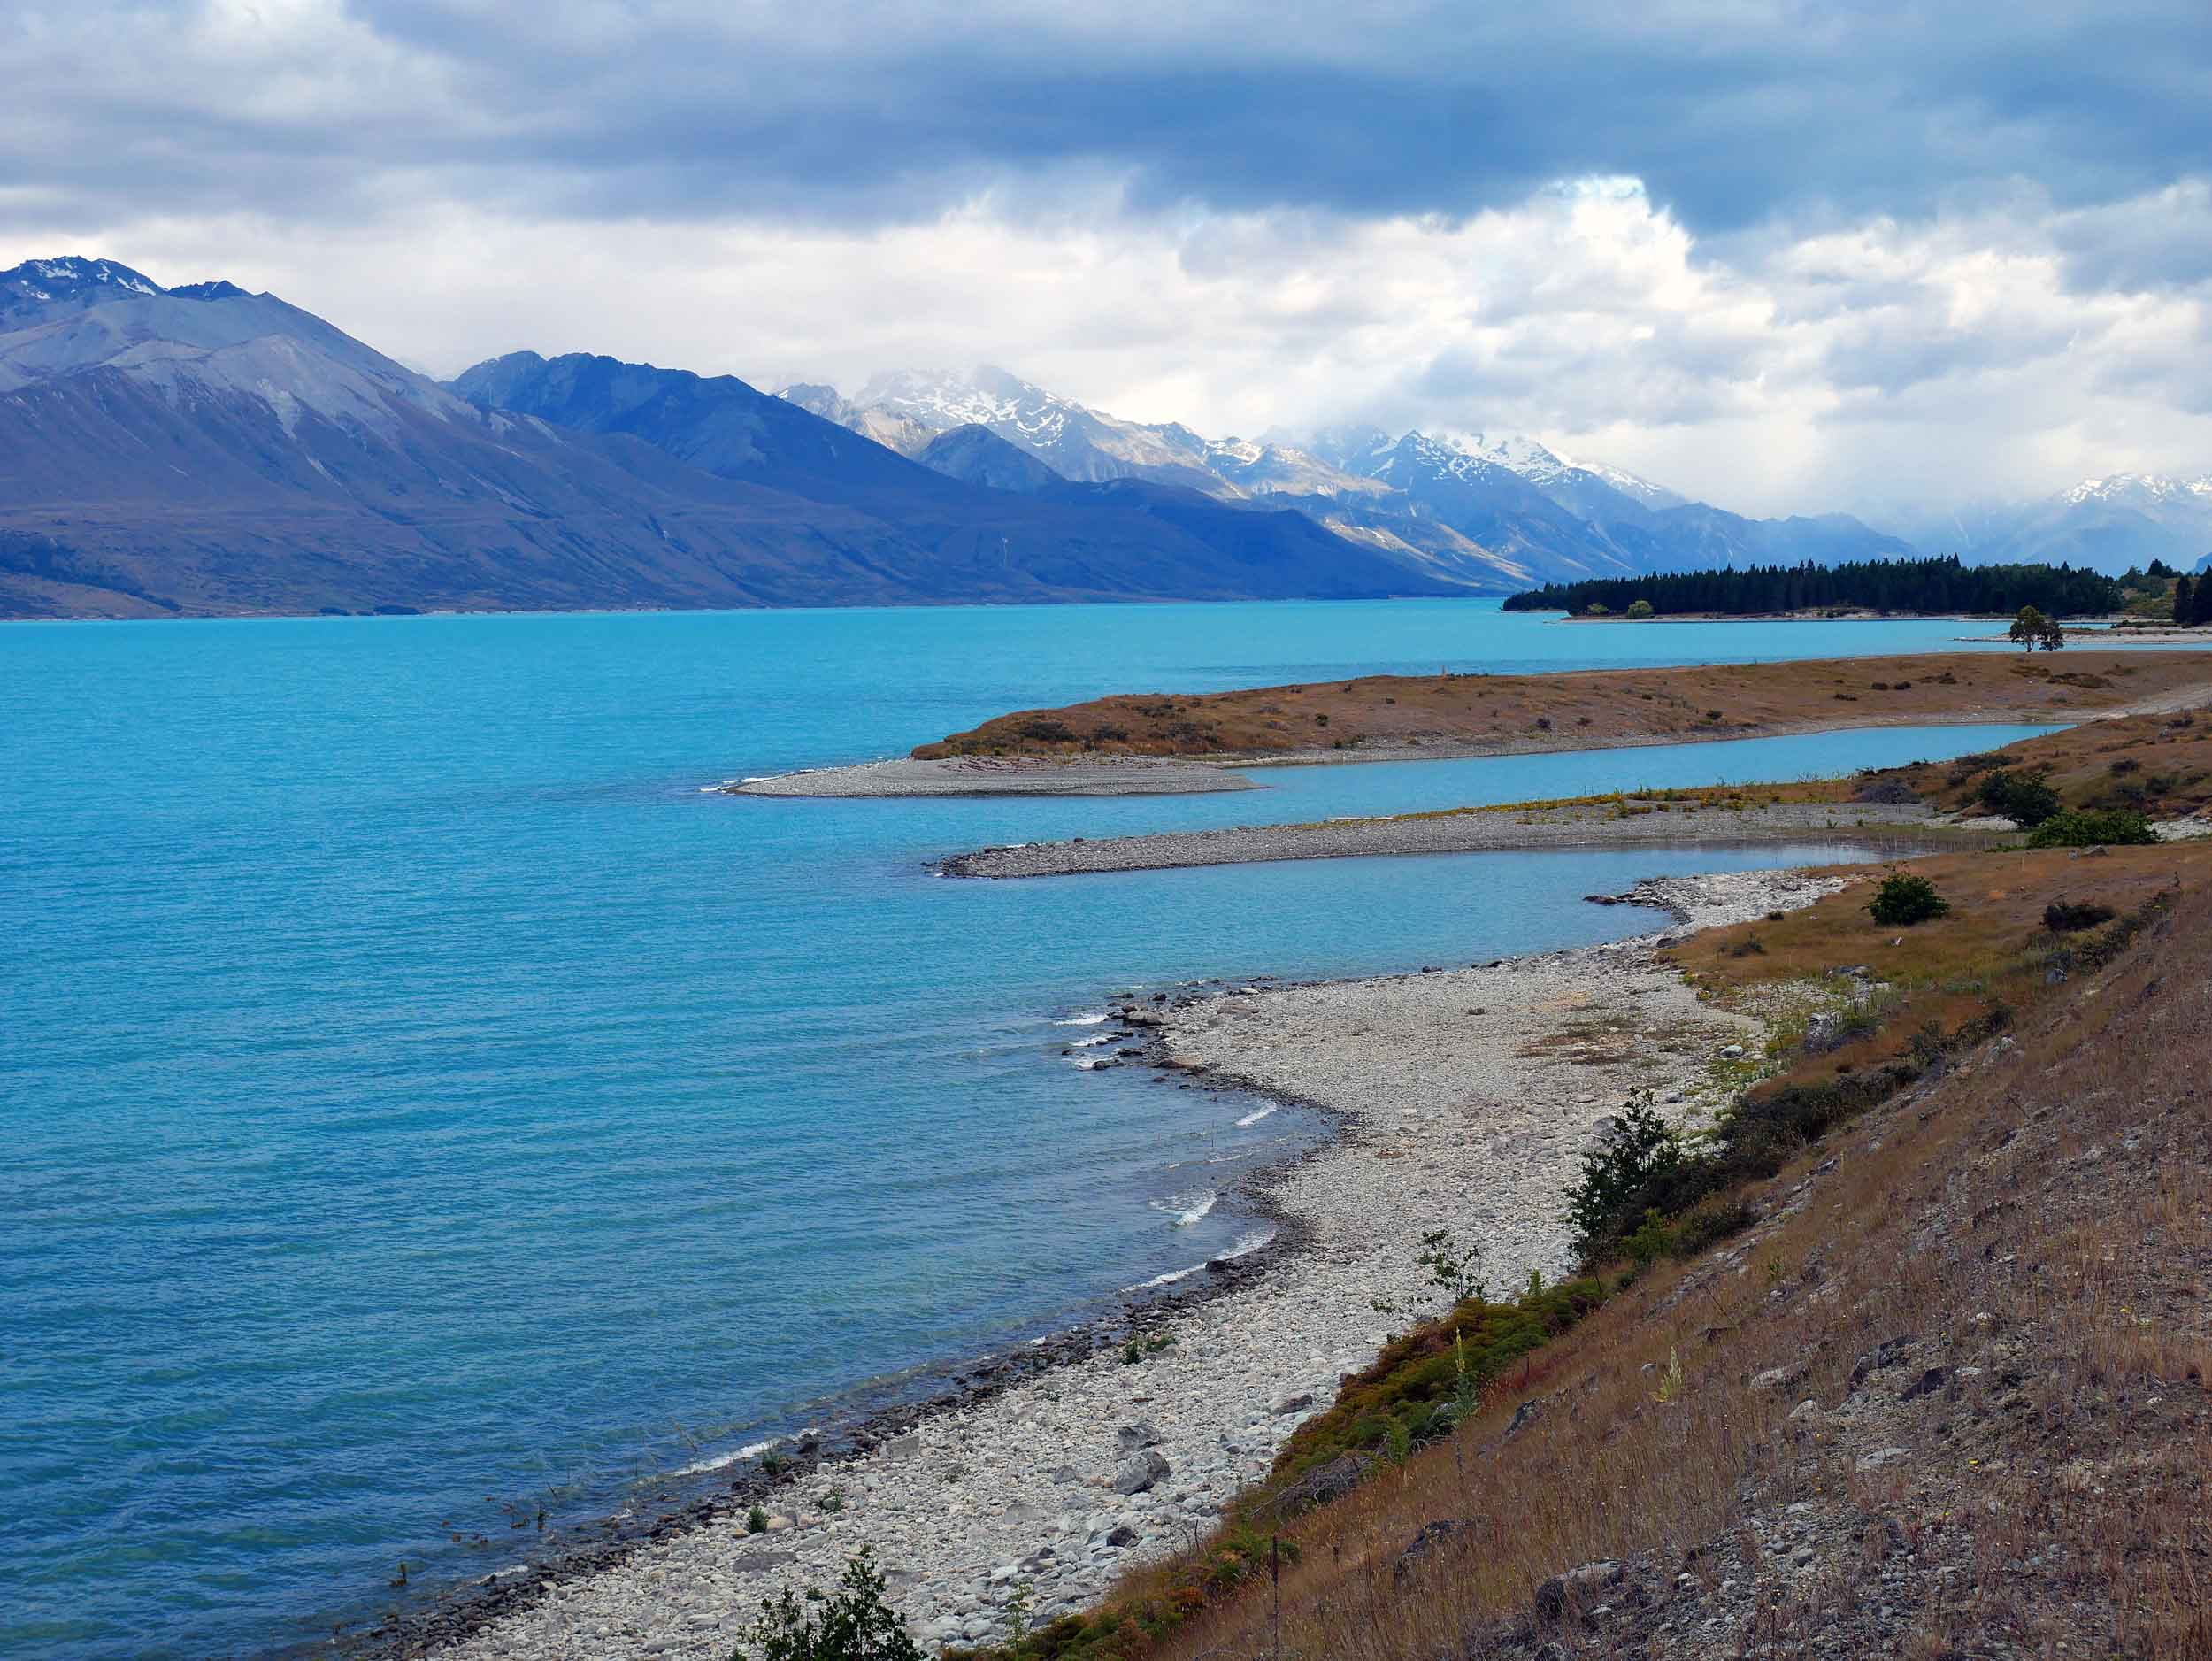 One of three parallel Alpine lakes, Lake Pukaki was formed when moraines of a receding glacier blocked its valley. The glacial runoff gives it a distinctive blue color (Jan 11).